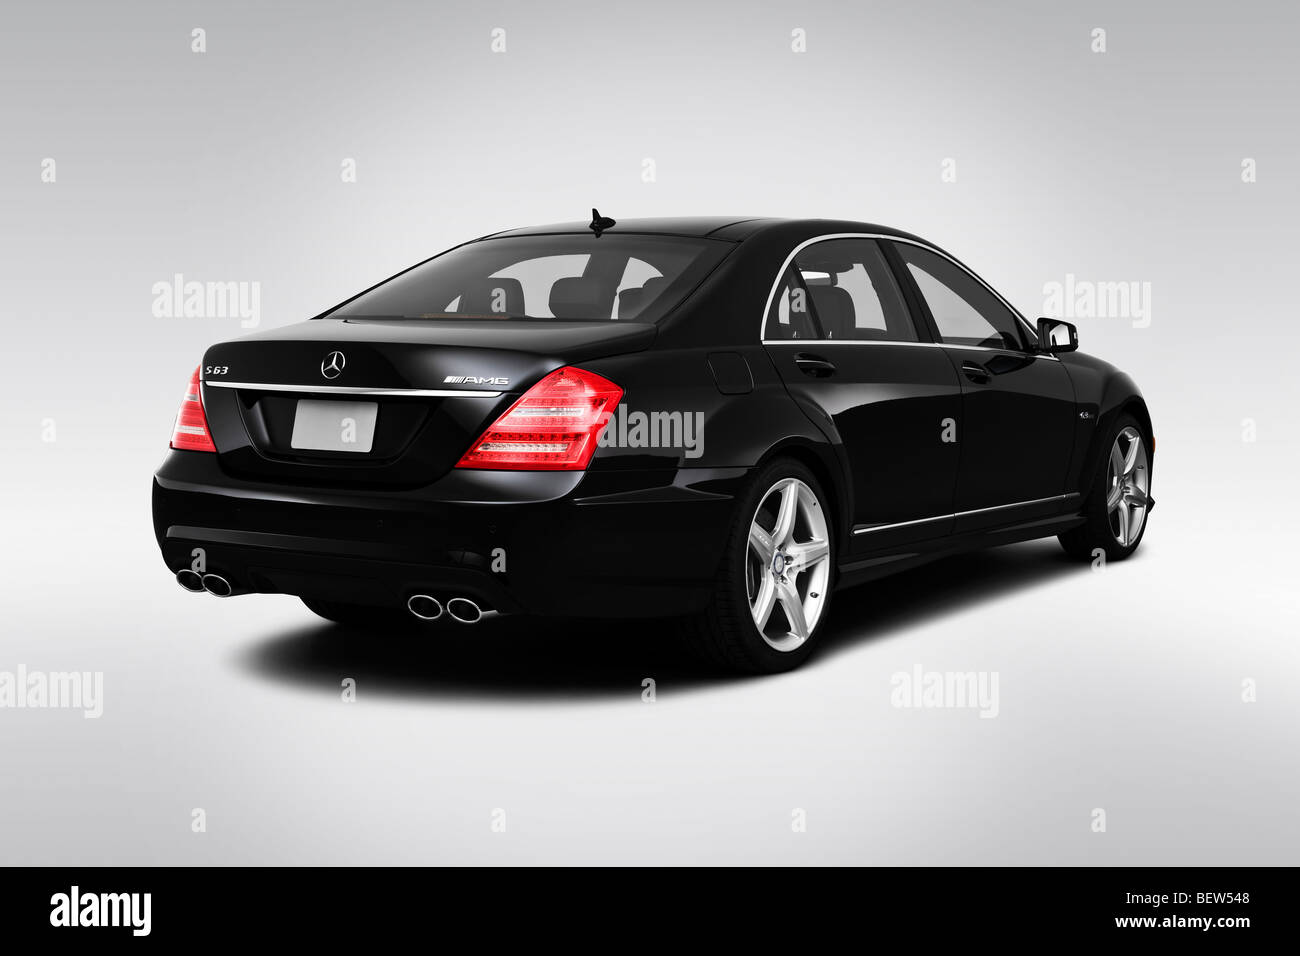 2010 mercedes benz s class s63 amg in black rear angle for Mercedes benz s class amg 2010